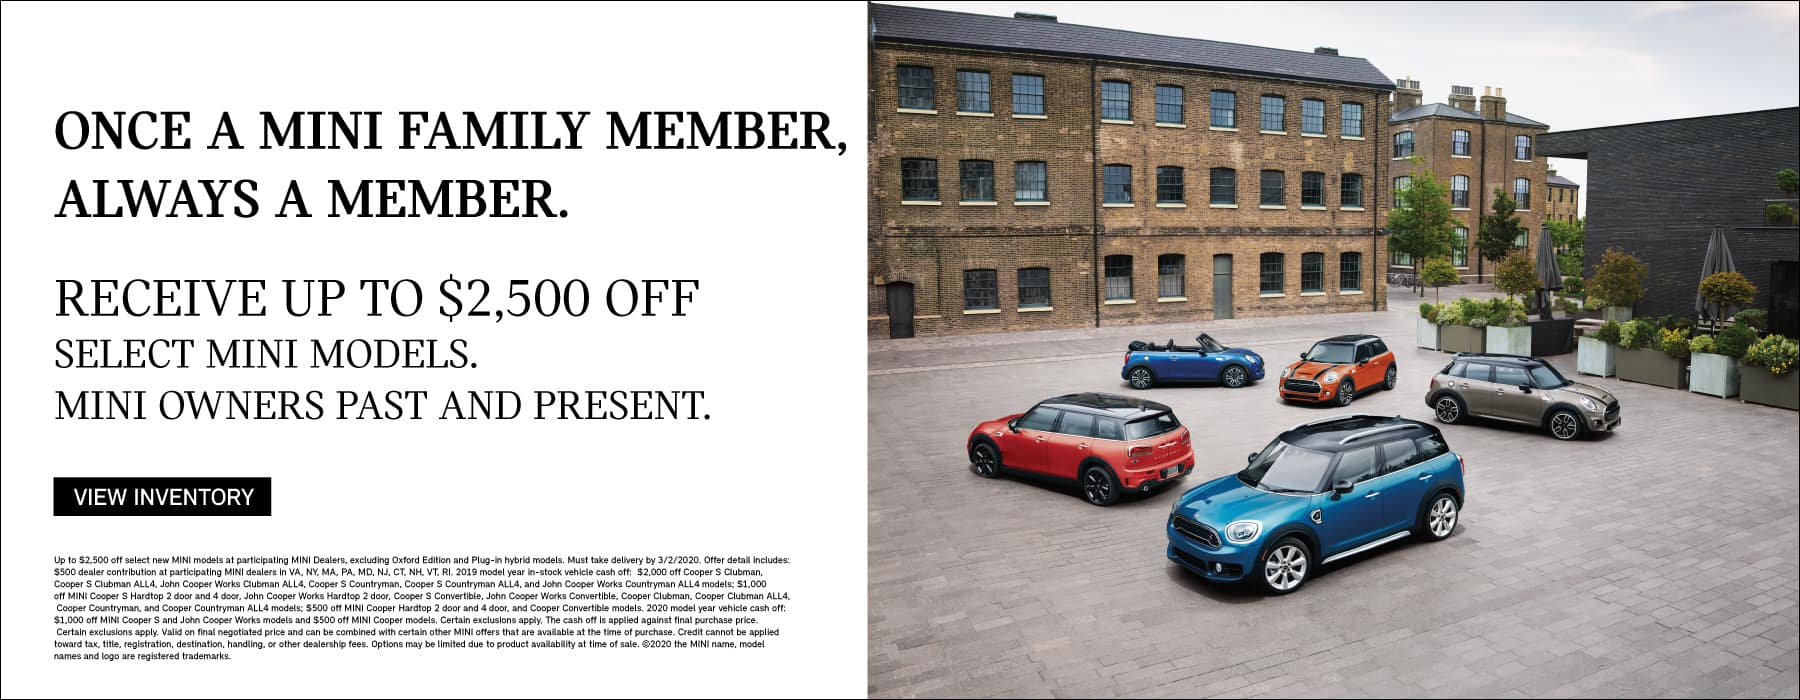 ONCE A MINI FAMILY MEMBER, ALWAYS A MEMBER. Receive up to $2,500 off select MINI models. MINI owners past and present. Click to view inventory.